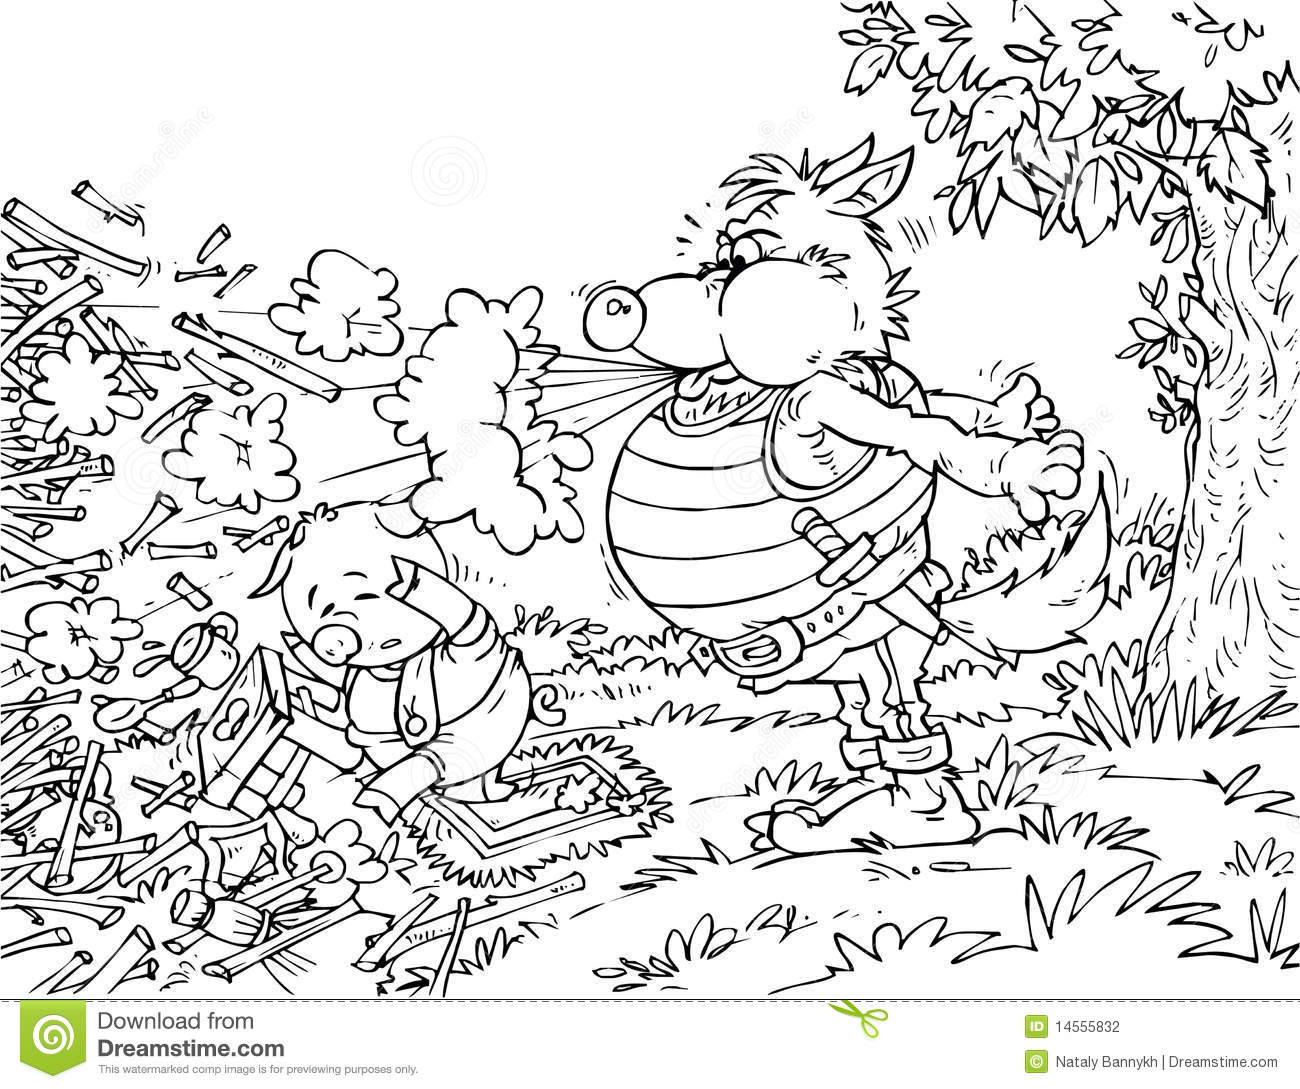 Coloring pages 3 little pigs - Big Bad Wolf And Little Pig Stock Photography